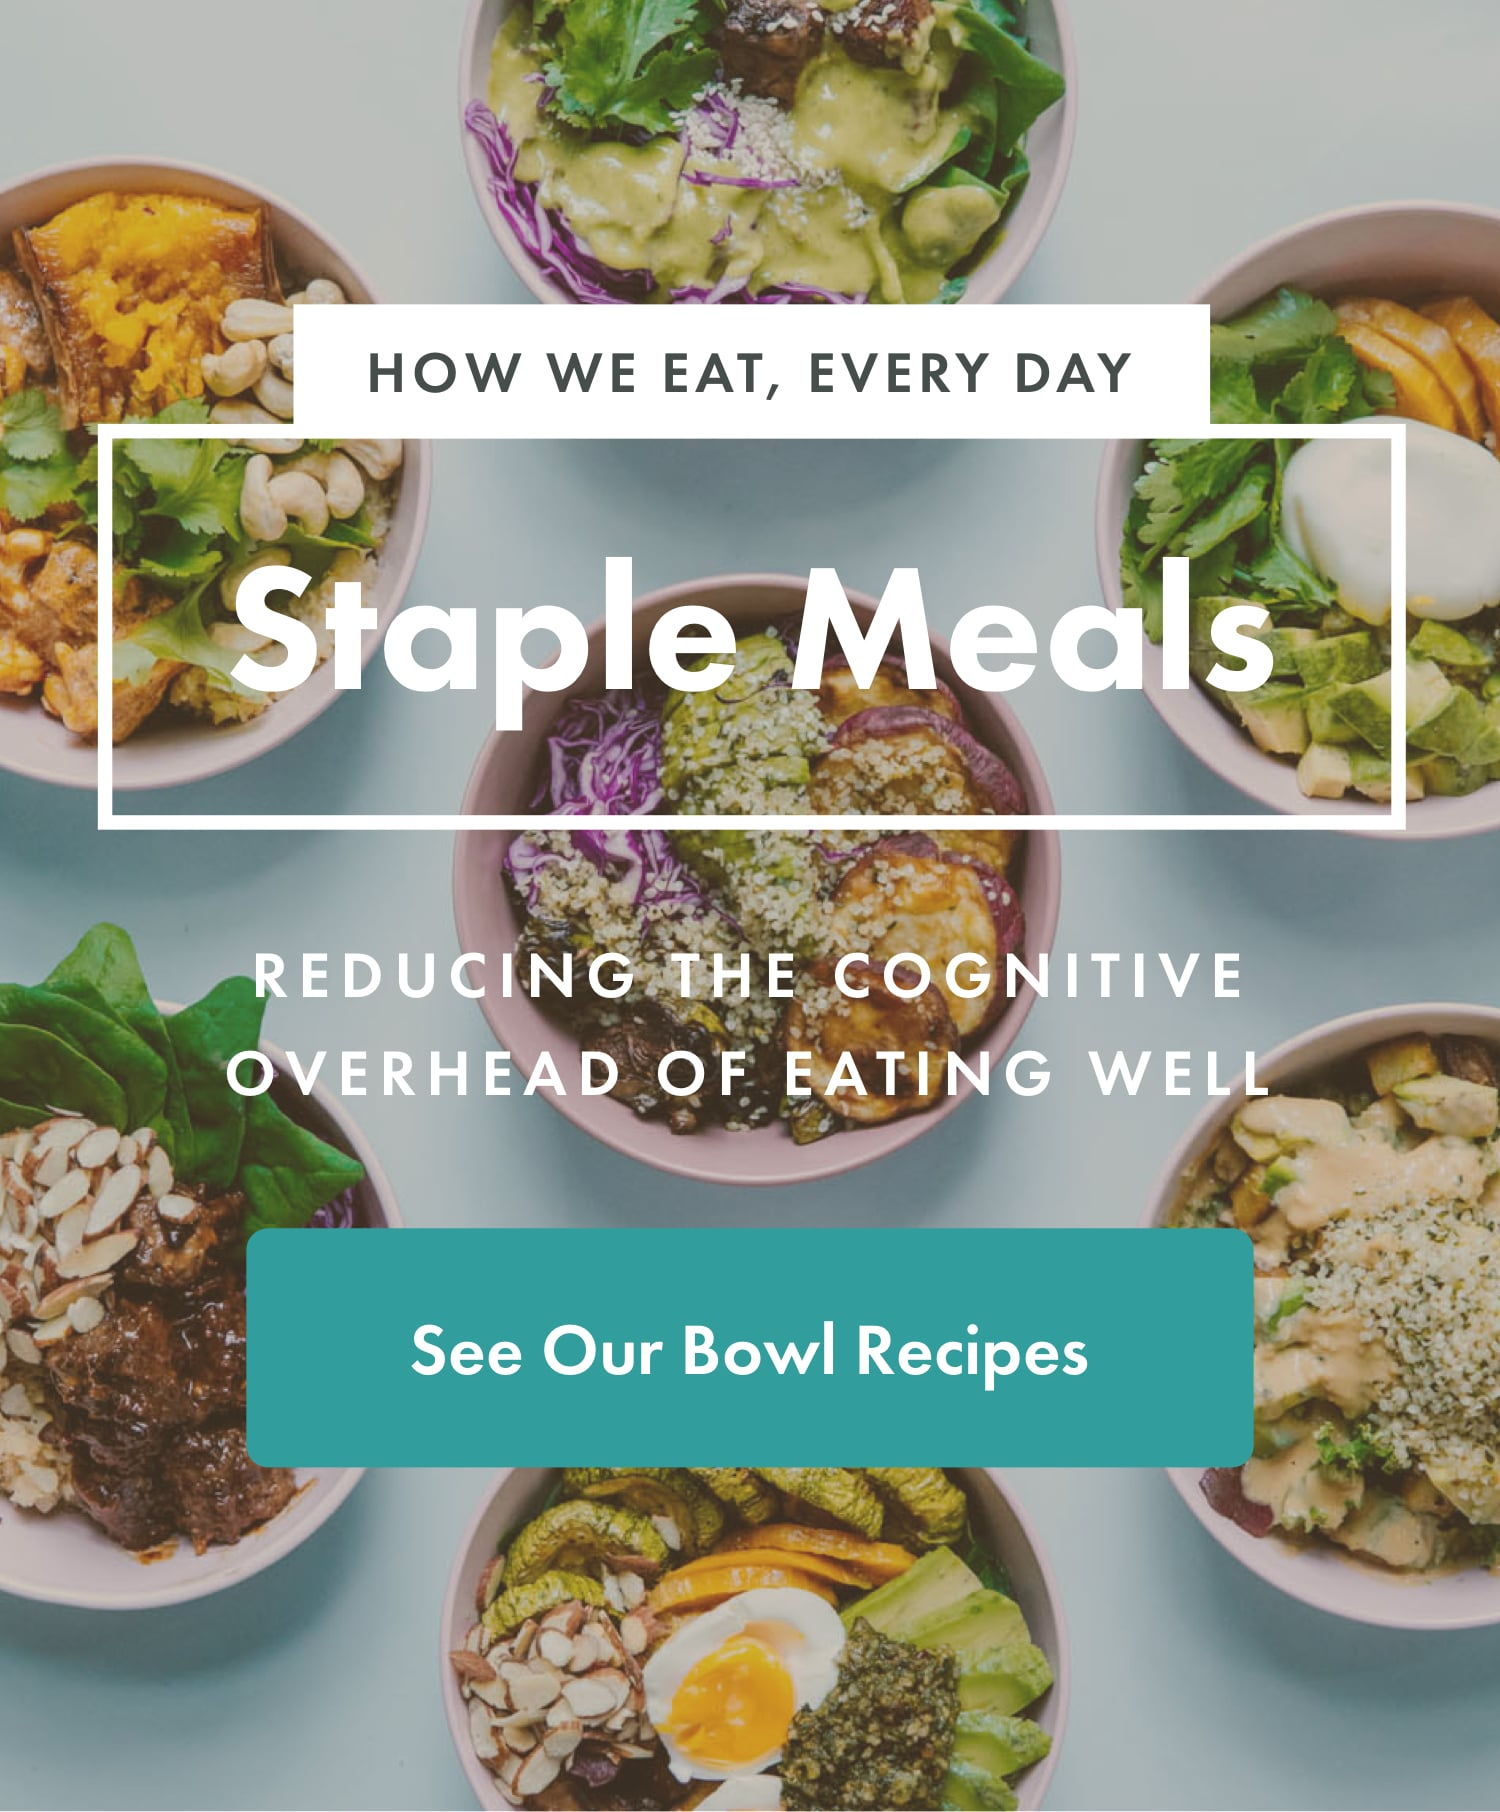 Staple Meals | Reducing The Cognitive Overhead Of Eating Well